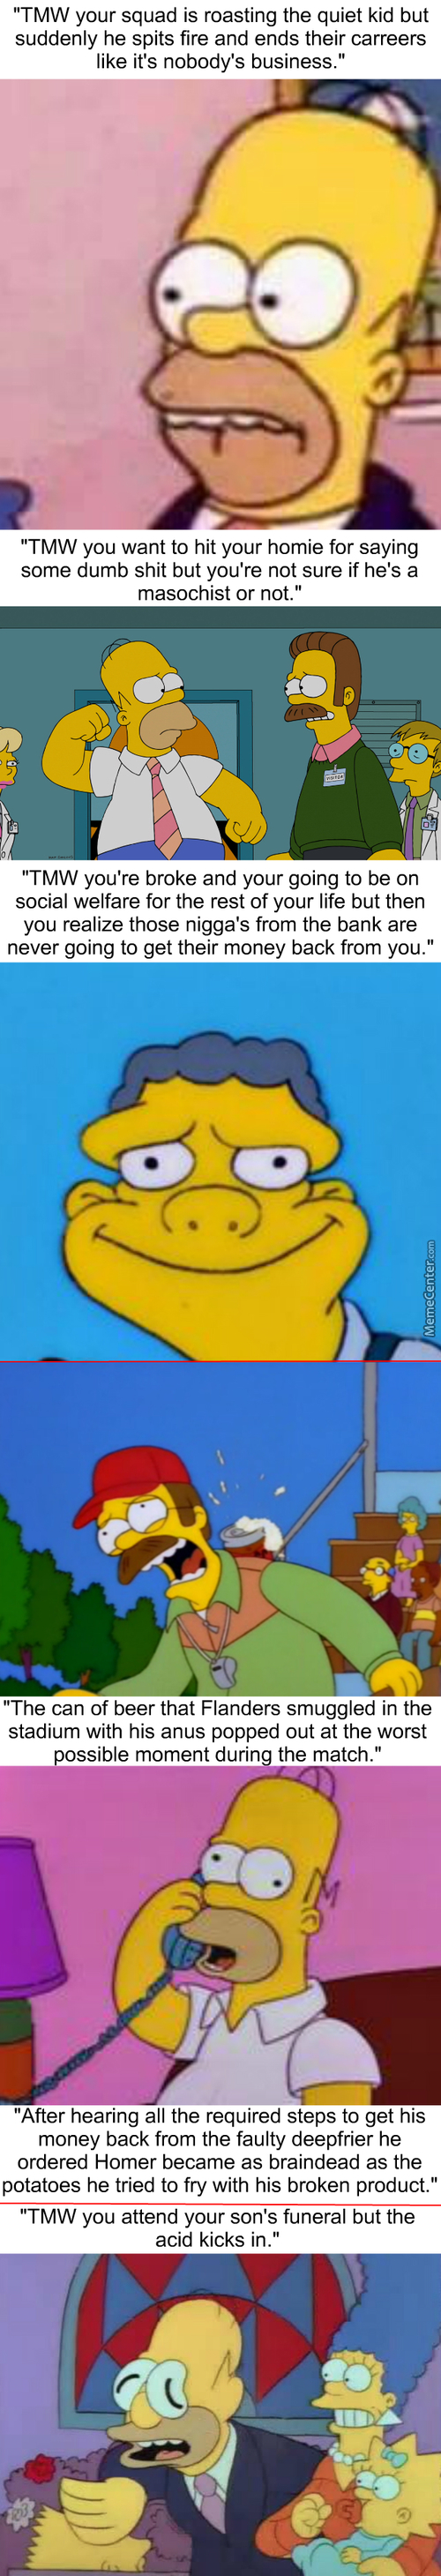 Homerstrips: Tmw You Run Out Of Content But You Still Roll With Your Meme